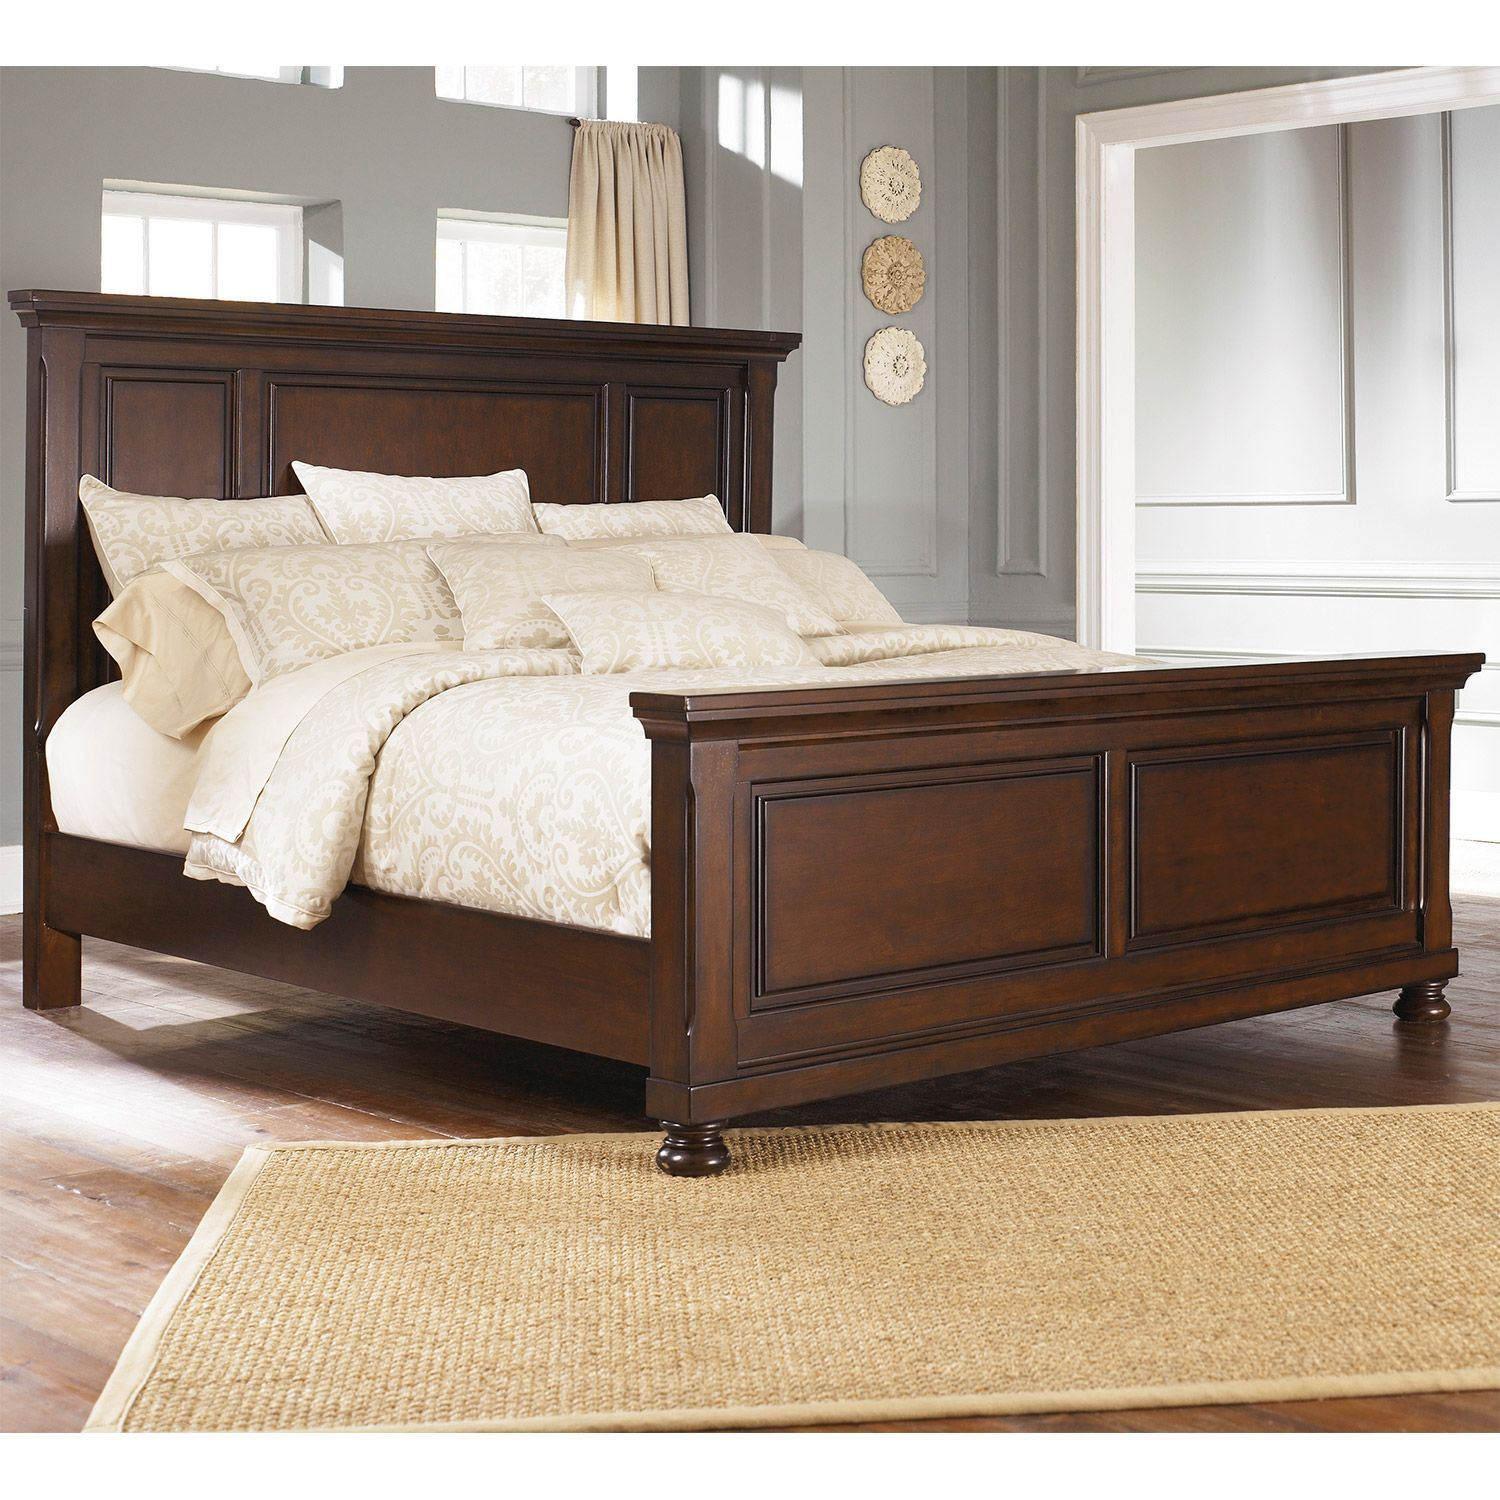 porter king panel bed b697 kpnlbed furniture afw